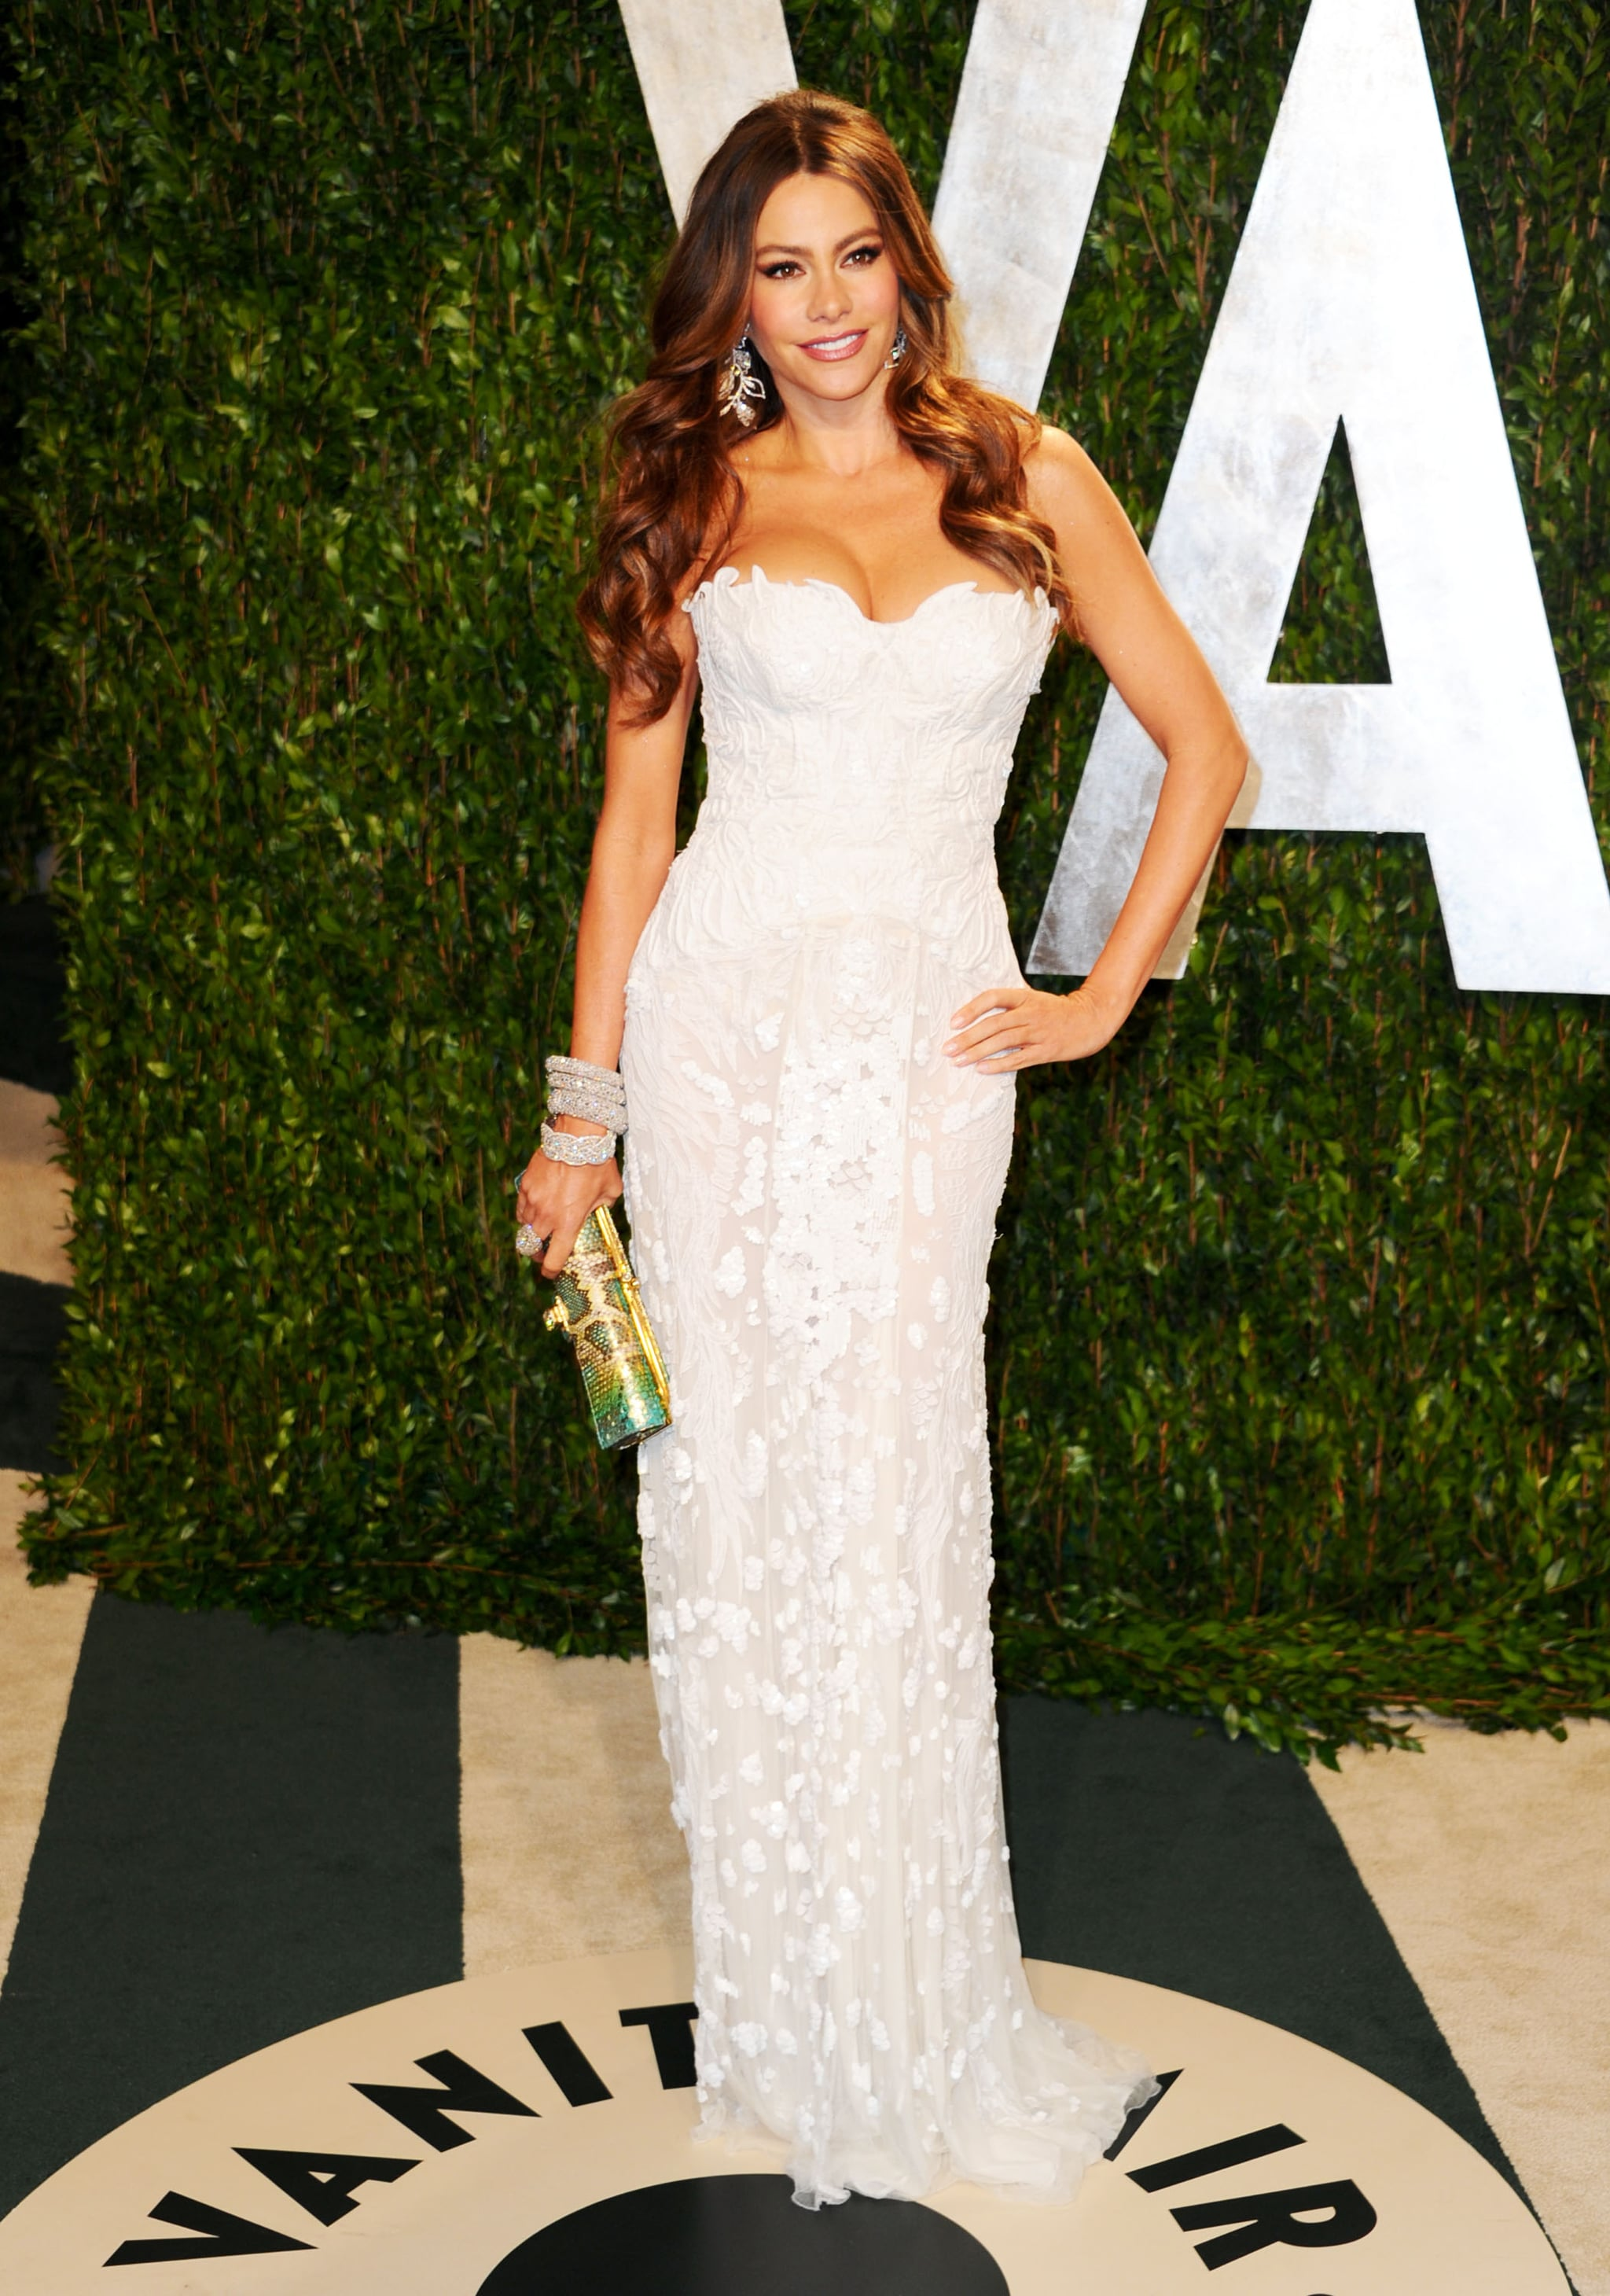 For Vanity Fair's 2012 Oscar party, Sofia stepped out in an ethereal flower-adorned Roberto Cavalli column gown. She accessorized her breathtaking gown with sparkling geometric earrings, a bevy of diamond bangles, and a python clutch for a pop of color.